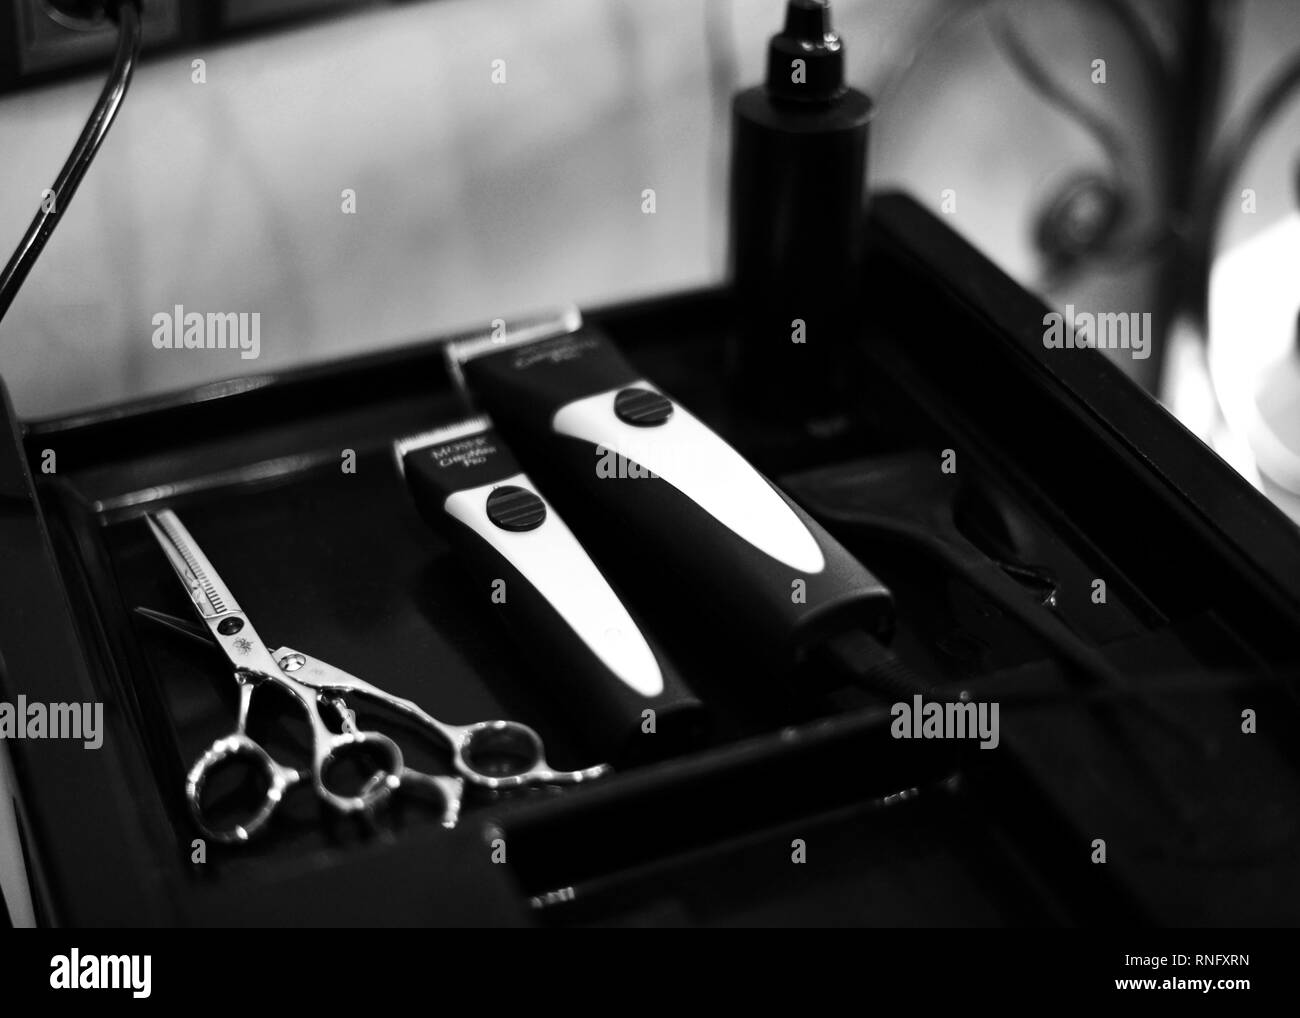 clipper and shaving machine, scissors, hairdryer, spray. beauty saloon tools for haircuts - Stock Image